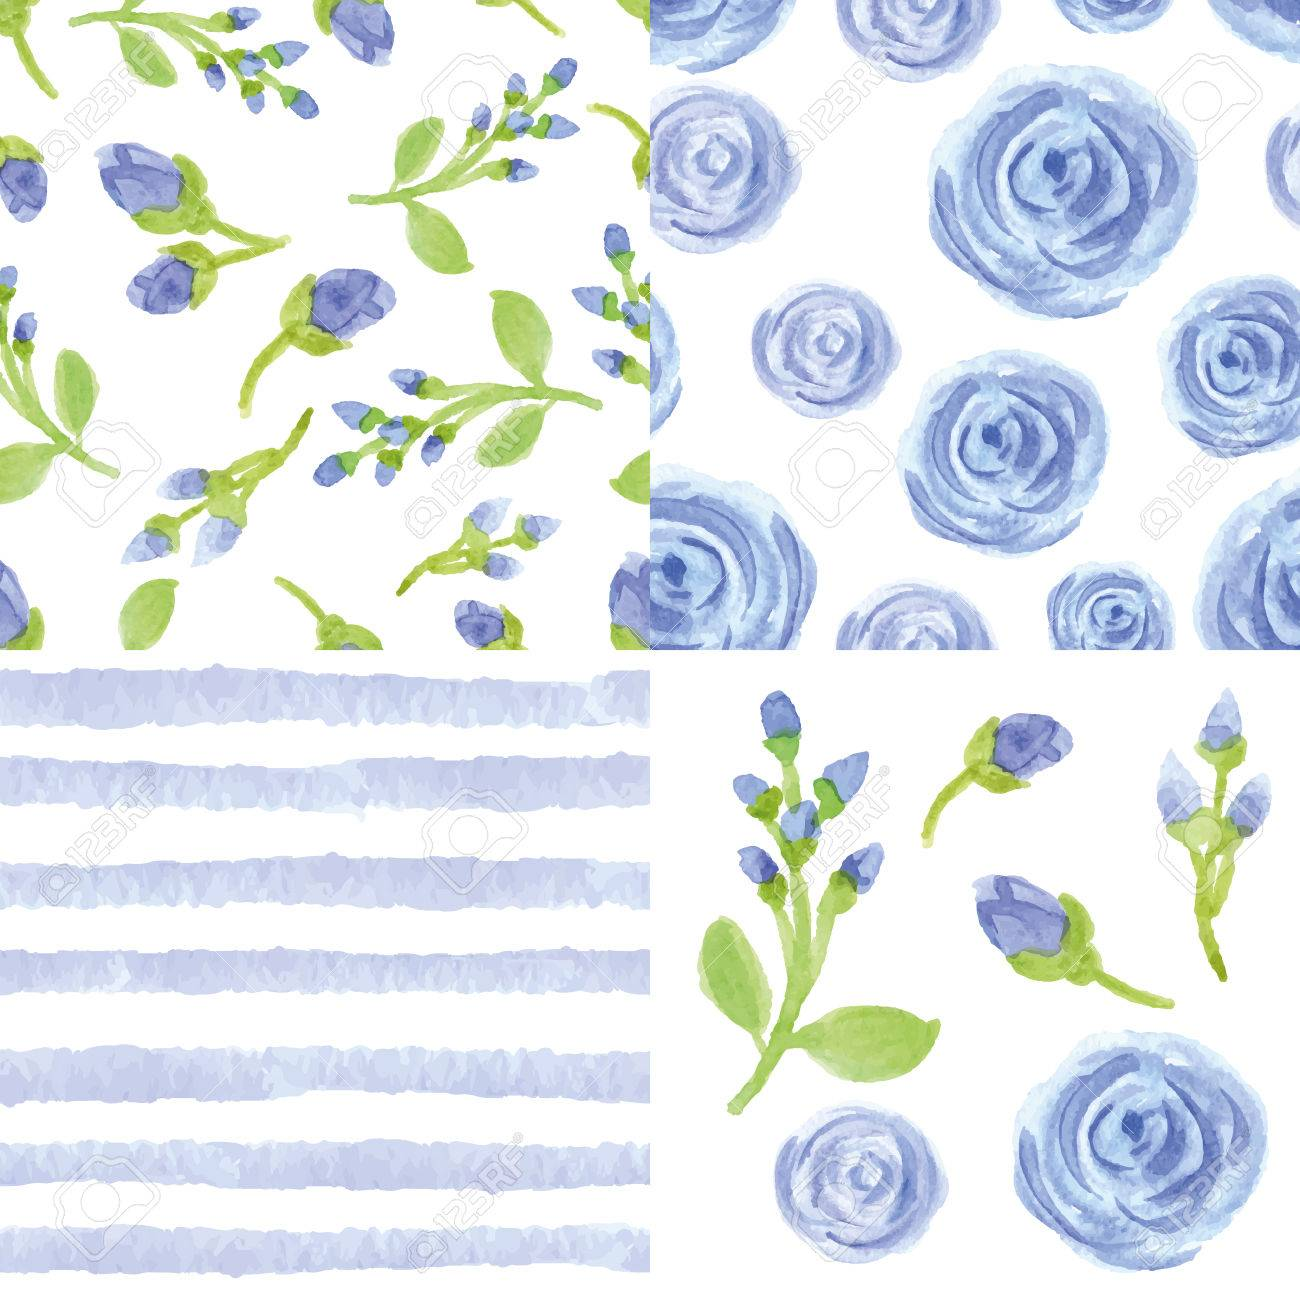 Watercolor Artistic Blue Flowers Strips Seamless Pattern Set Simple Royalty Free Cliparts Vectors And Stock Illustration Image 47521072